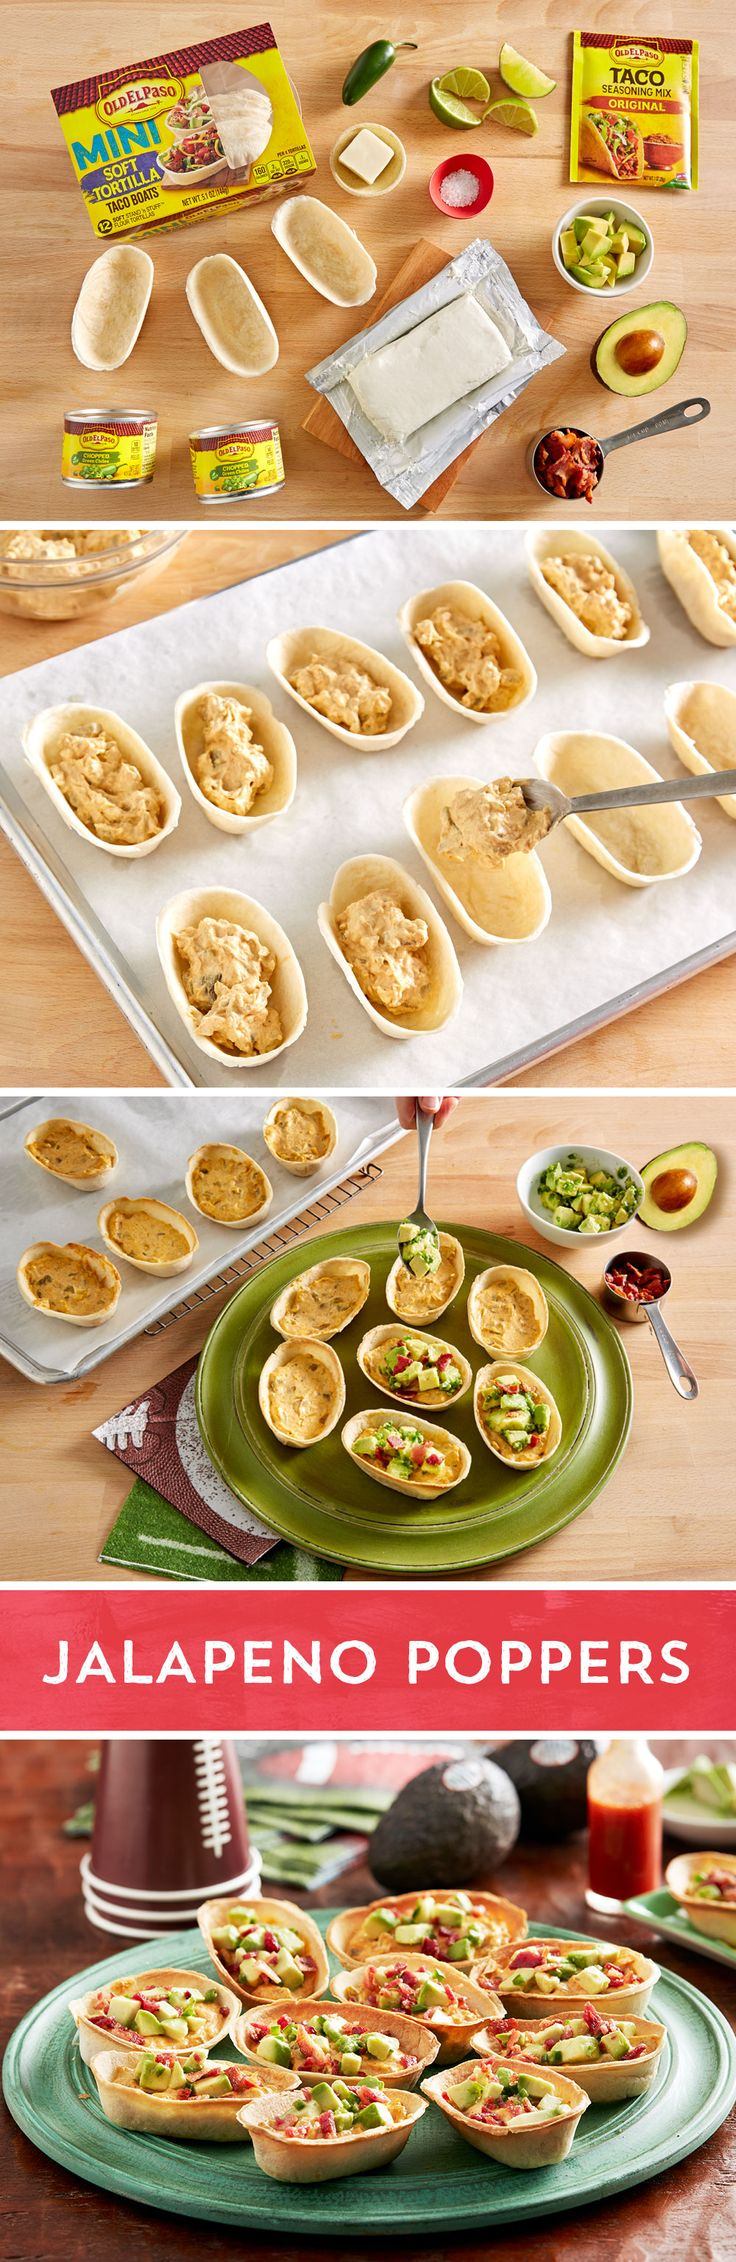 Get all the flavor of jalapeño poppers plus the creaminess of avocado with these quick, and easy appetizer boats. Combine cream cheese, Old El Paso™ Green Chiles and Old El Paso™ Taco Seasoning in a medium bowl. Spread mixture in Old El Paso™  Mini Taco Boats and bake 12-14 minutes. In a medium bowl gently mix an Avocado from Mexico™ avocado, jalapeño chile, lime juice and salt. Spoon avocado mixture into boats and top with bacon. Add a little kick to your game day party! Via @AvosFromMexico